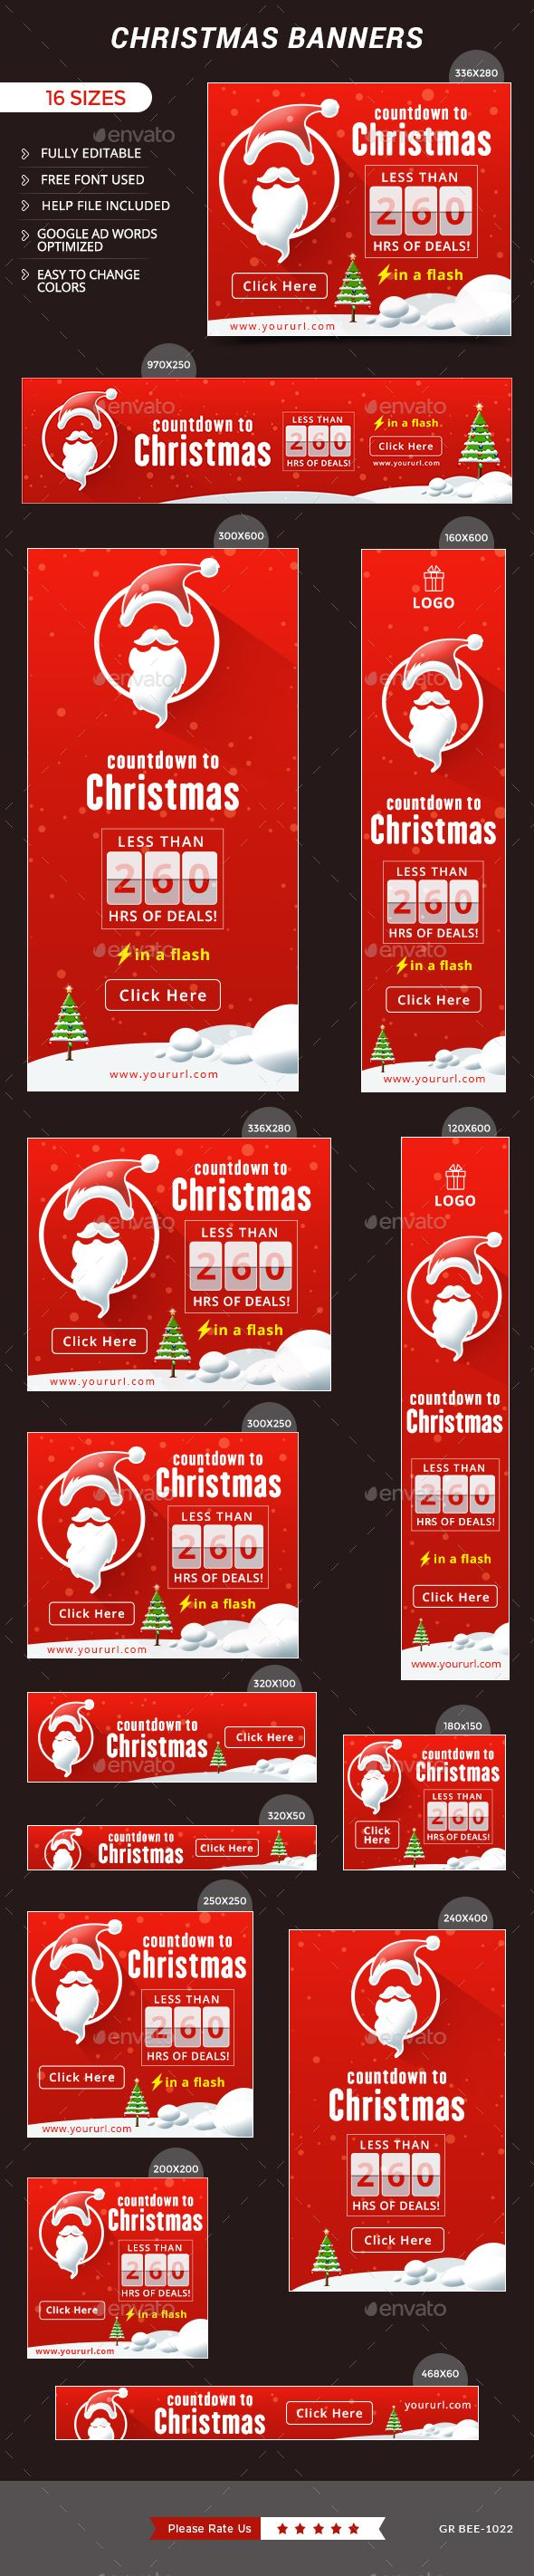 Christmas Web Banners Template PSD #design #xmas #ads Download: http://graphicriver.net/item/christmas-banners/13976994?ref=ksioks